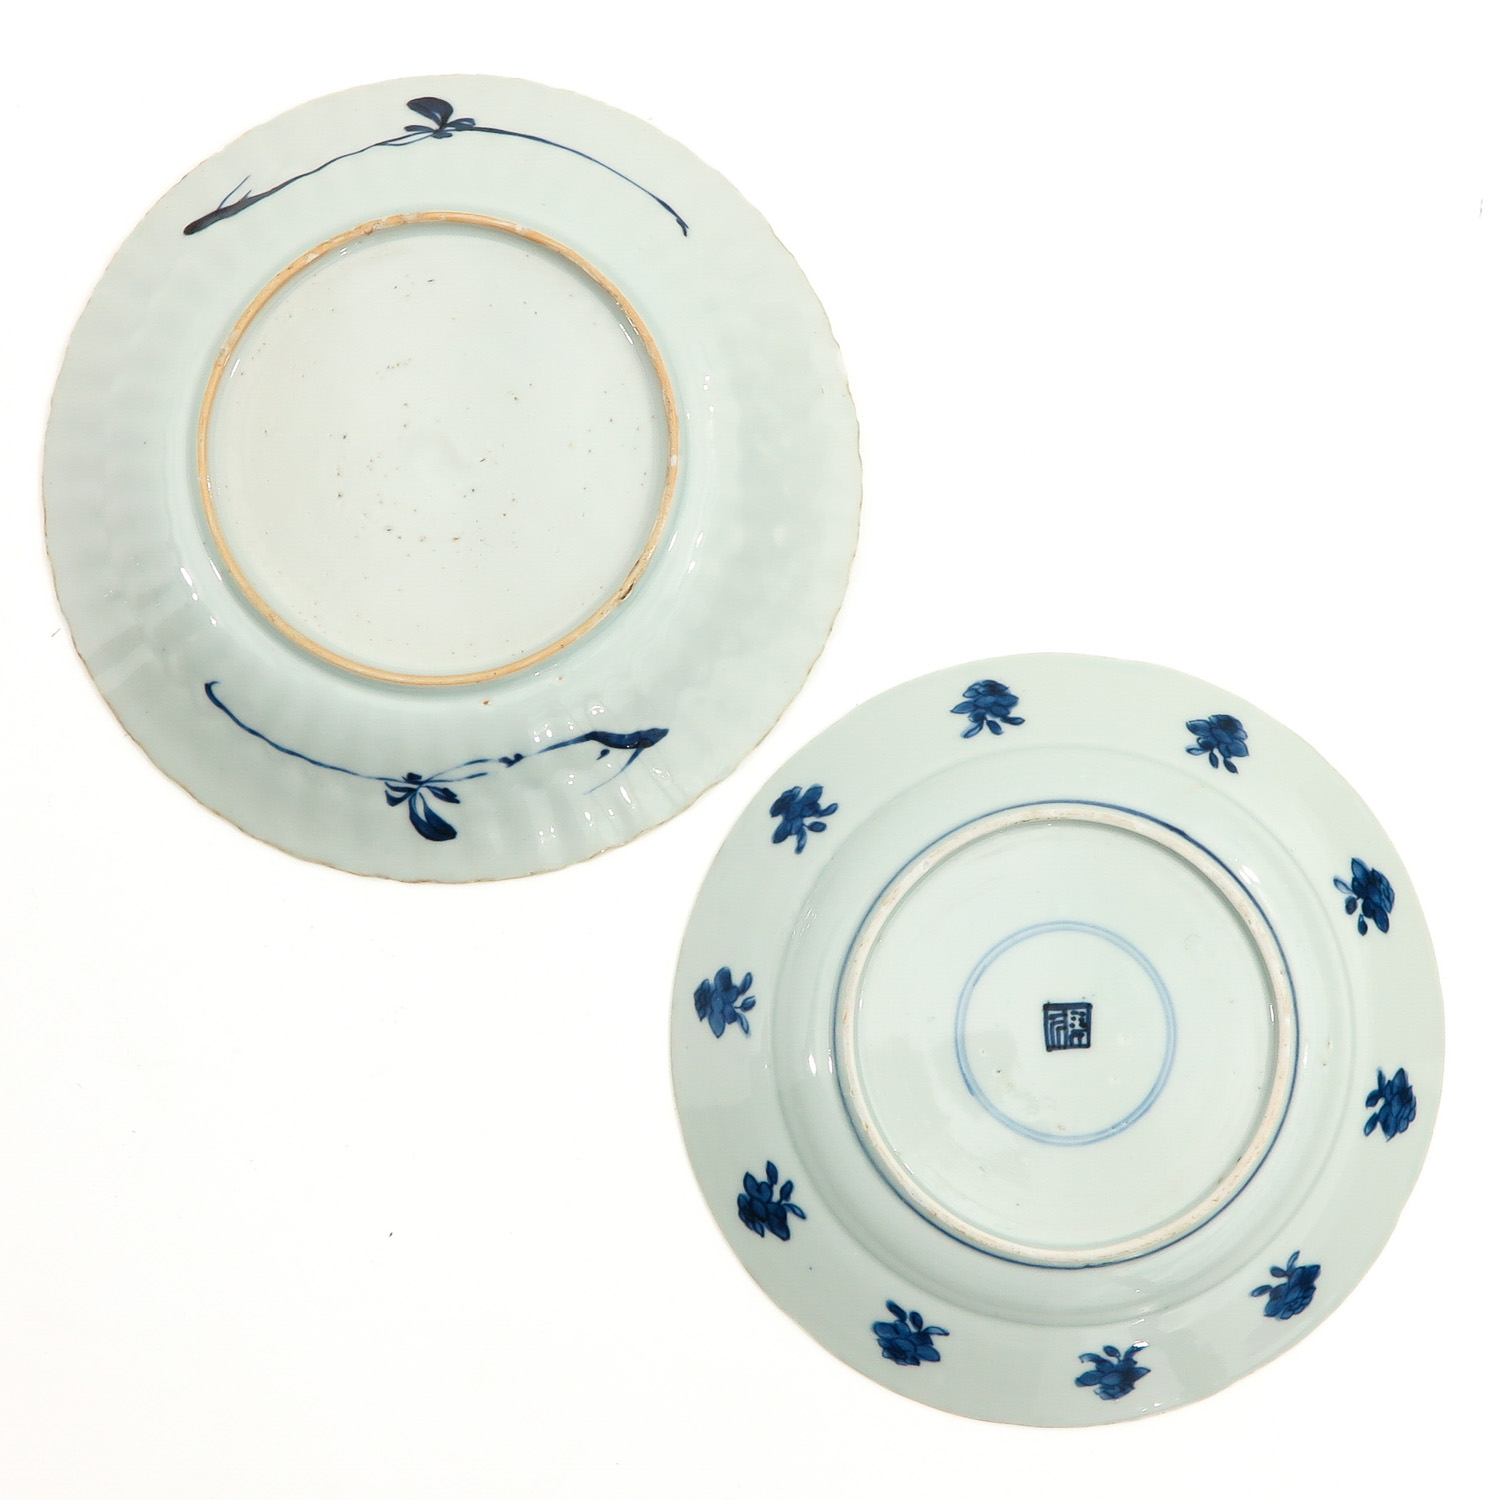 A Lot of 2 Blue and White Plates - Image 2 of 10